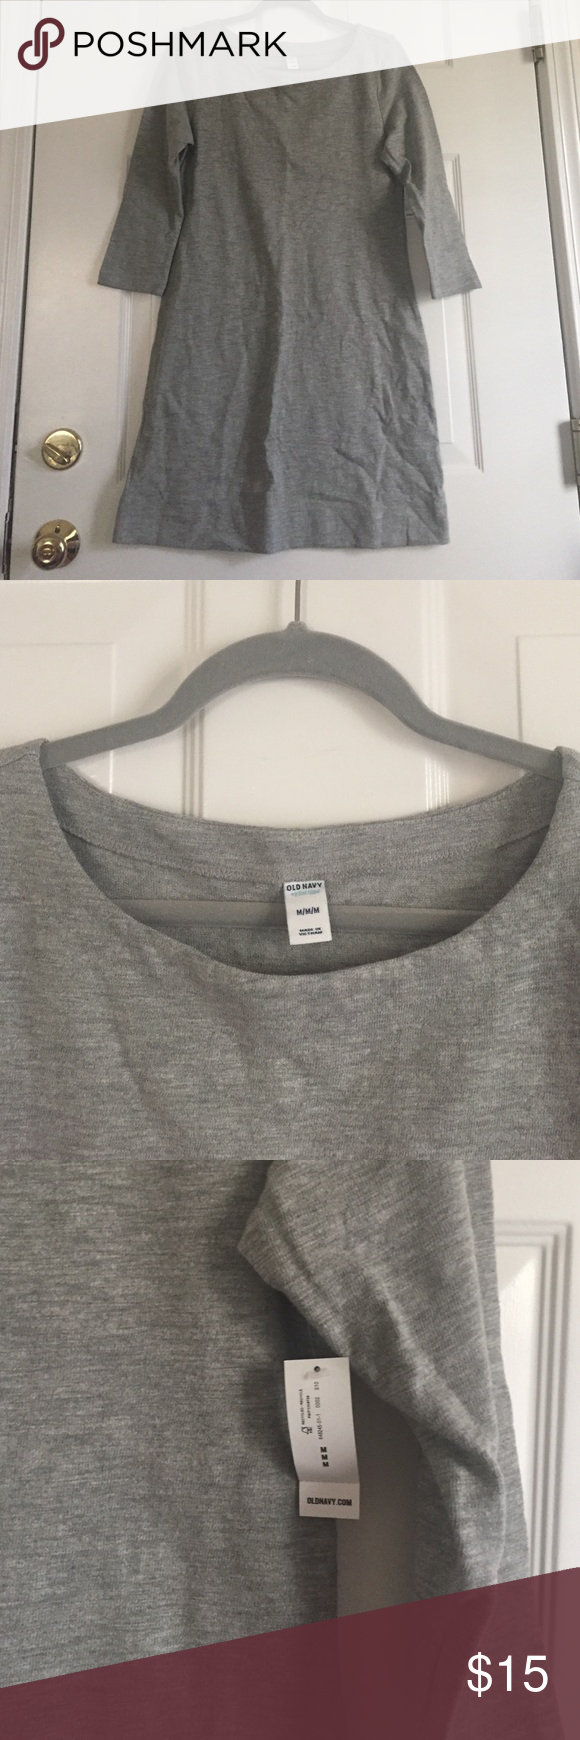 Old navy dress Old navy dress. Brand new with tags. Gray, thicker non stretchy material. 3/4 sleeves. Old Navy Dresses